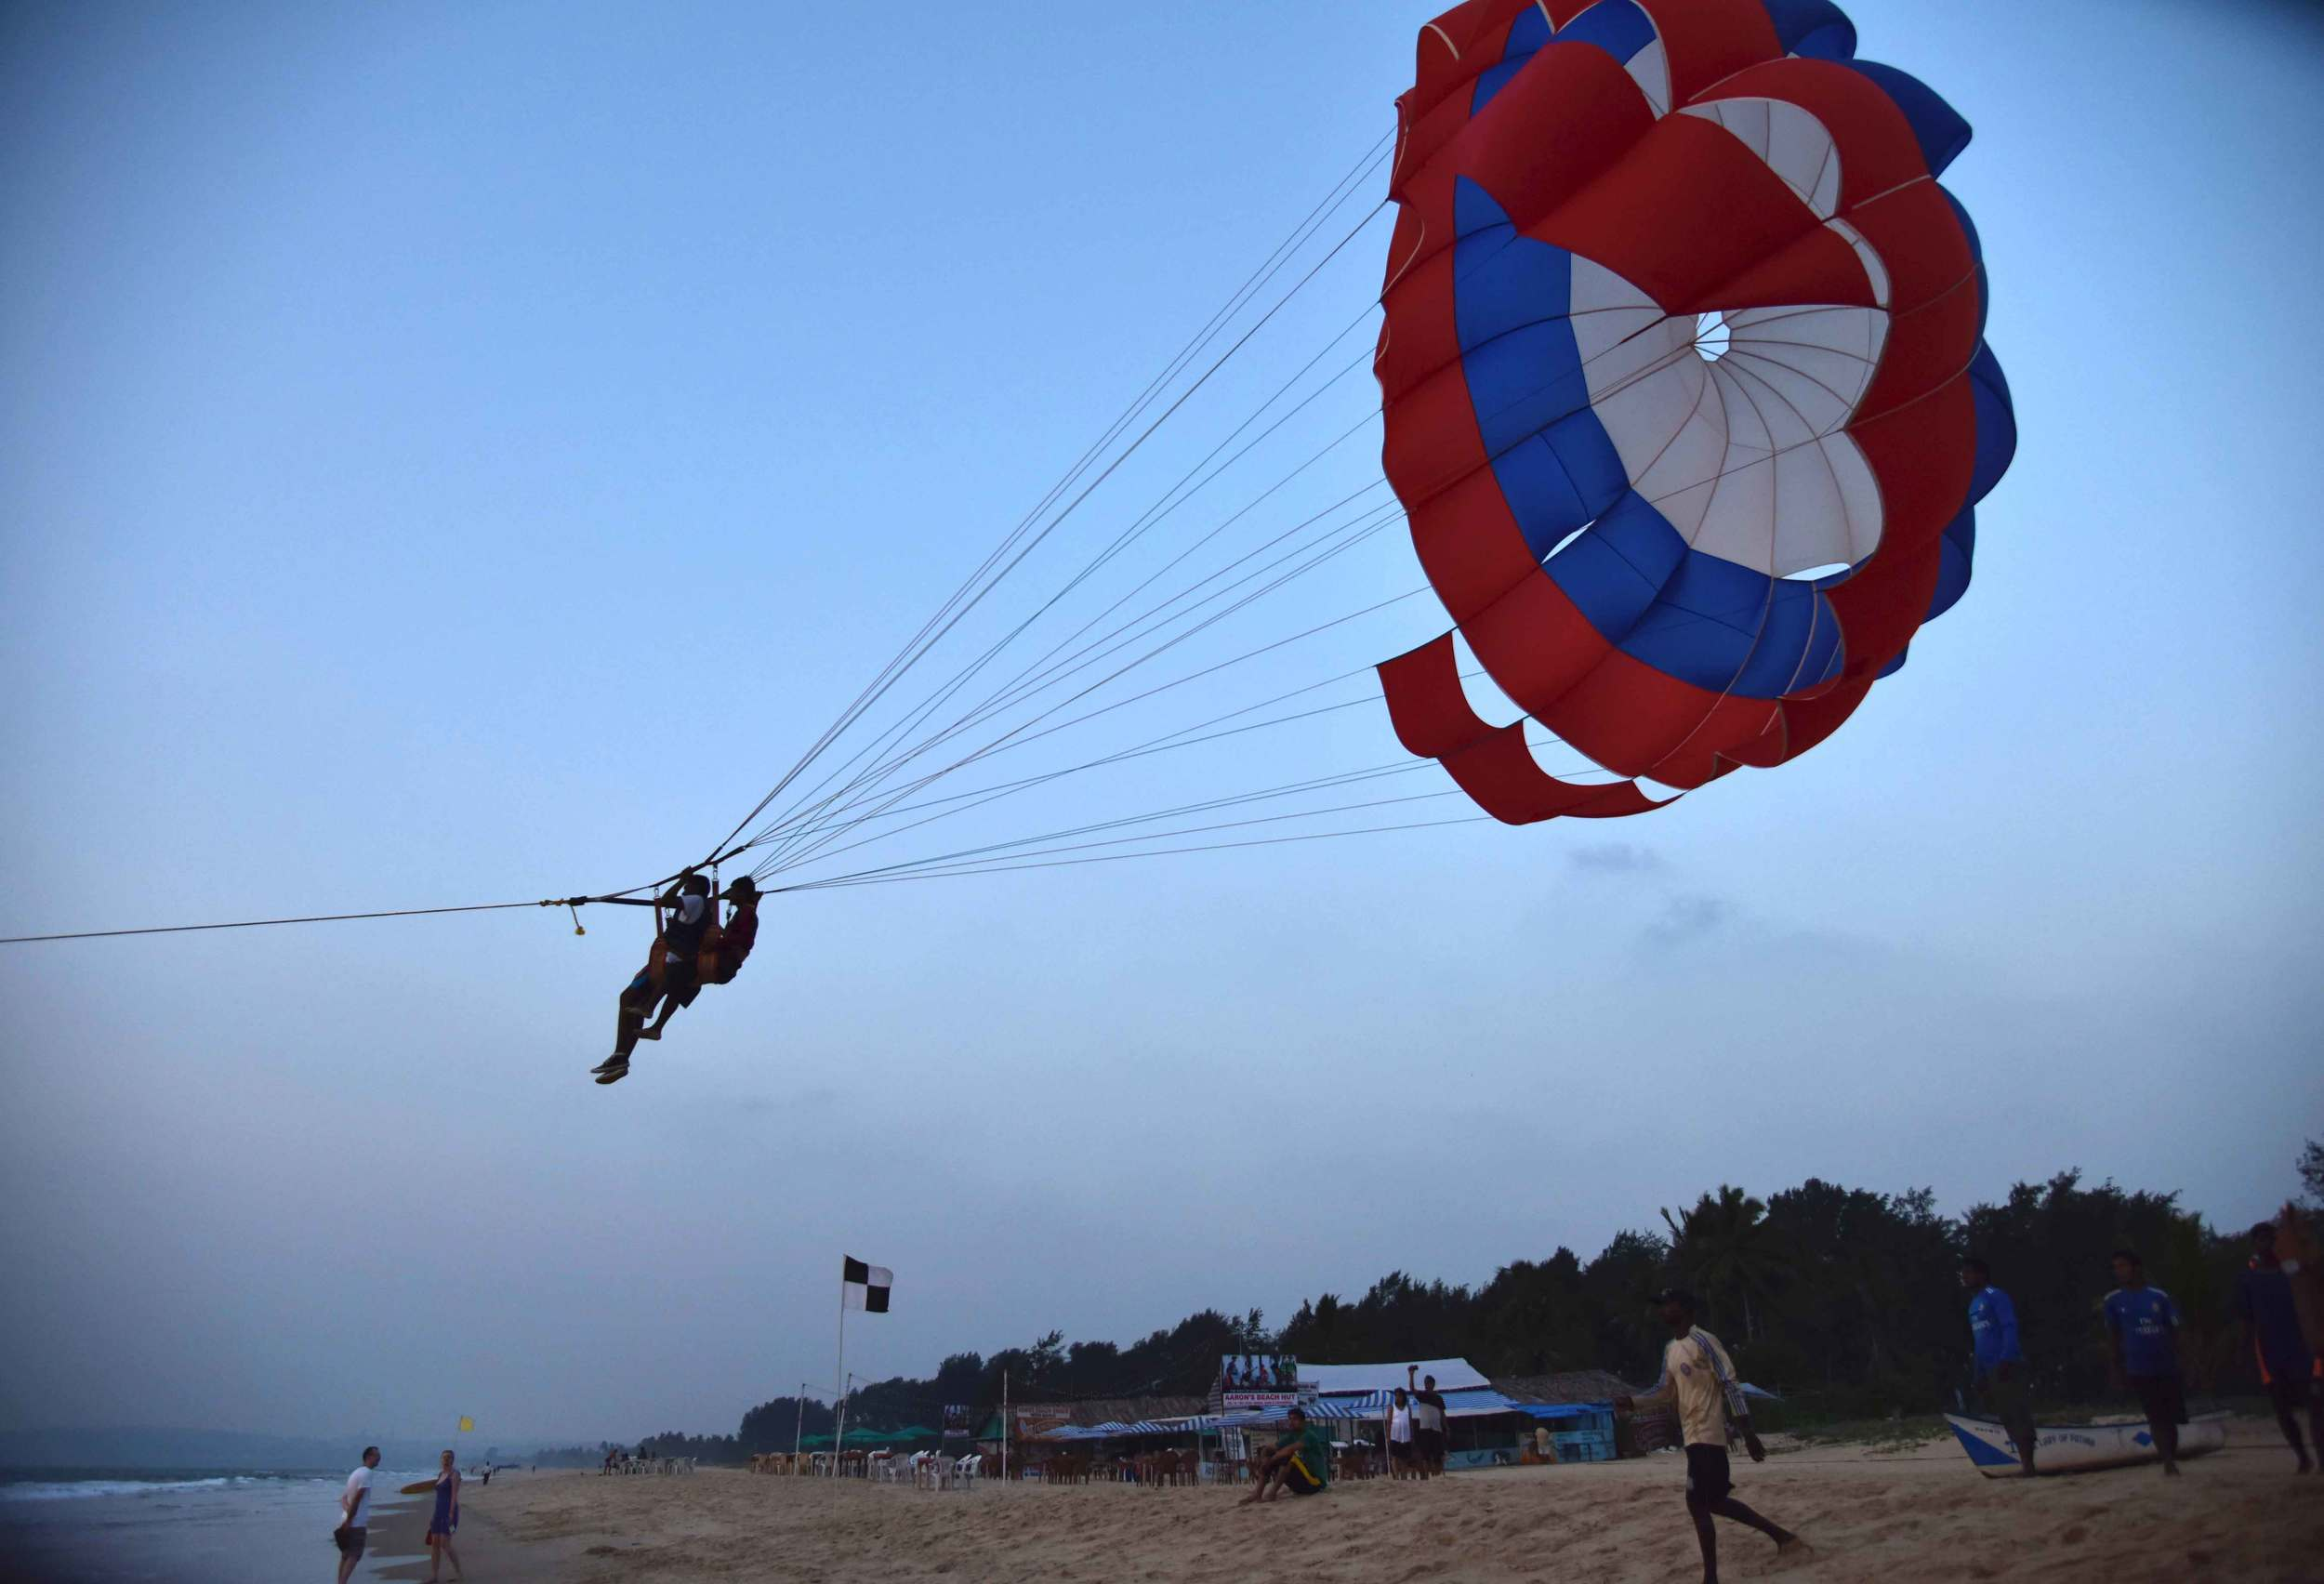 Paragliding, Park Hyatt, Goa, India, 5 star hotel, luxury beach resort, spa. Image©thingstodot.com